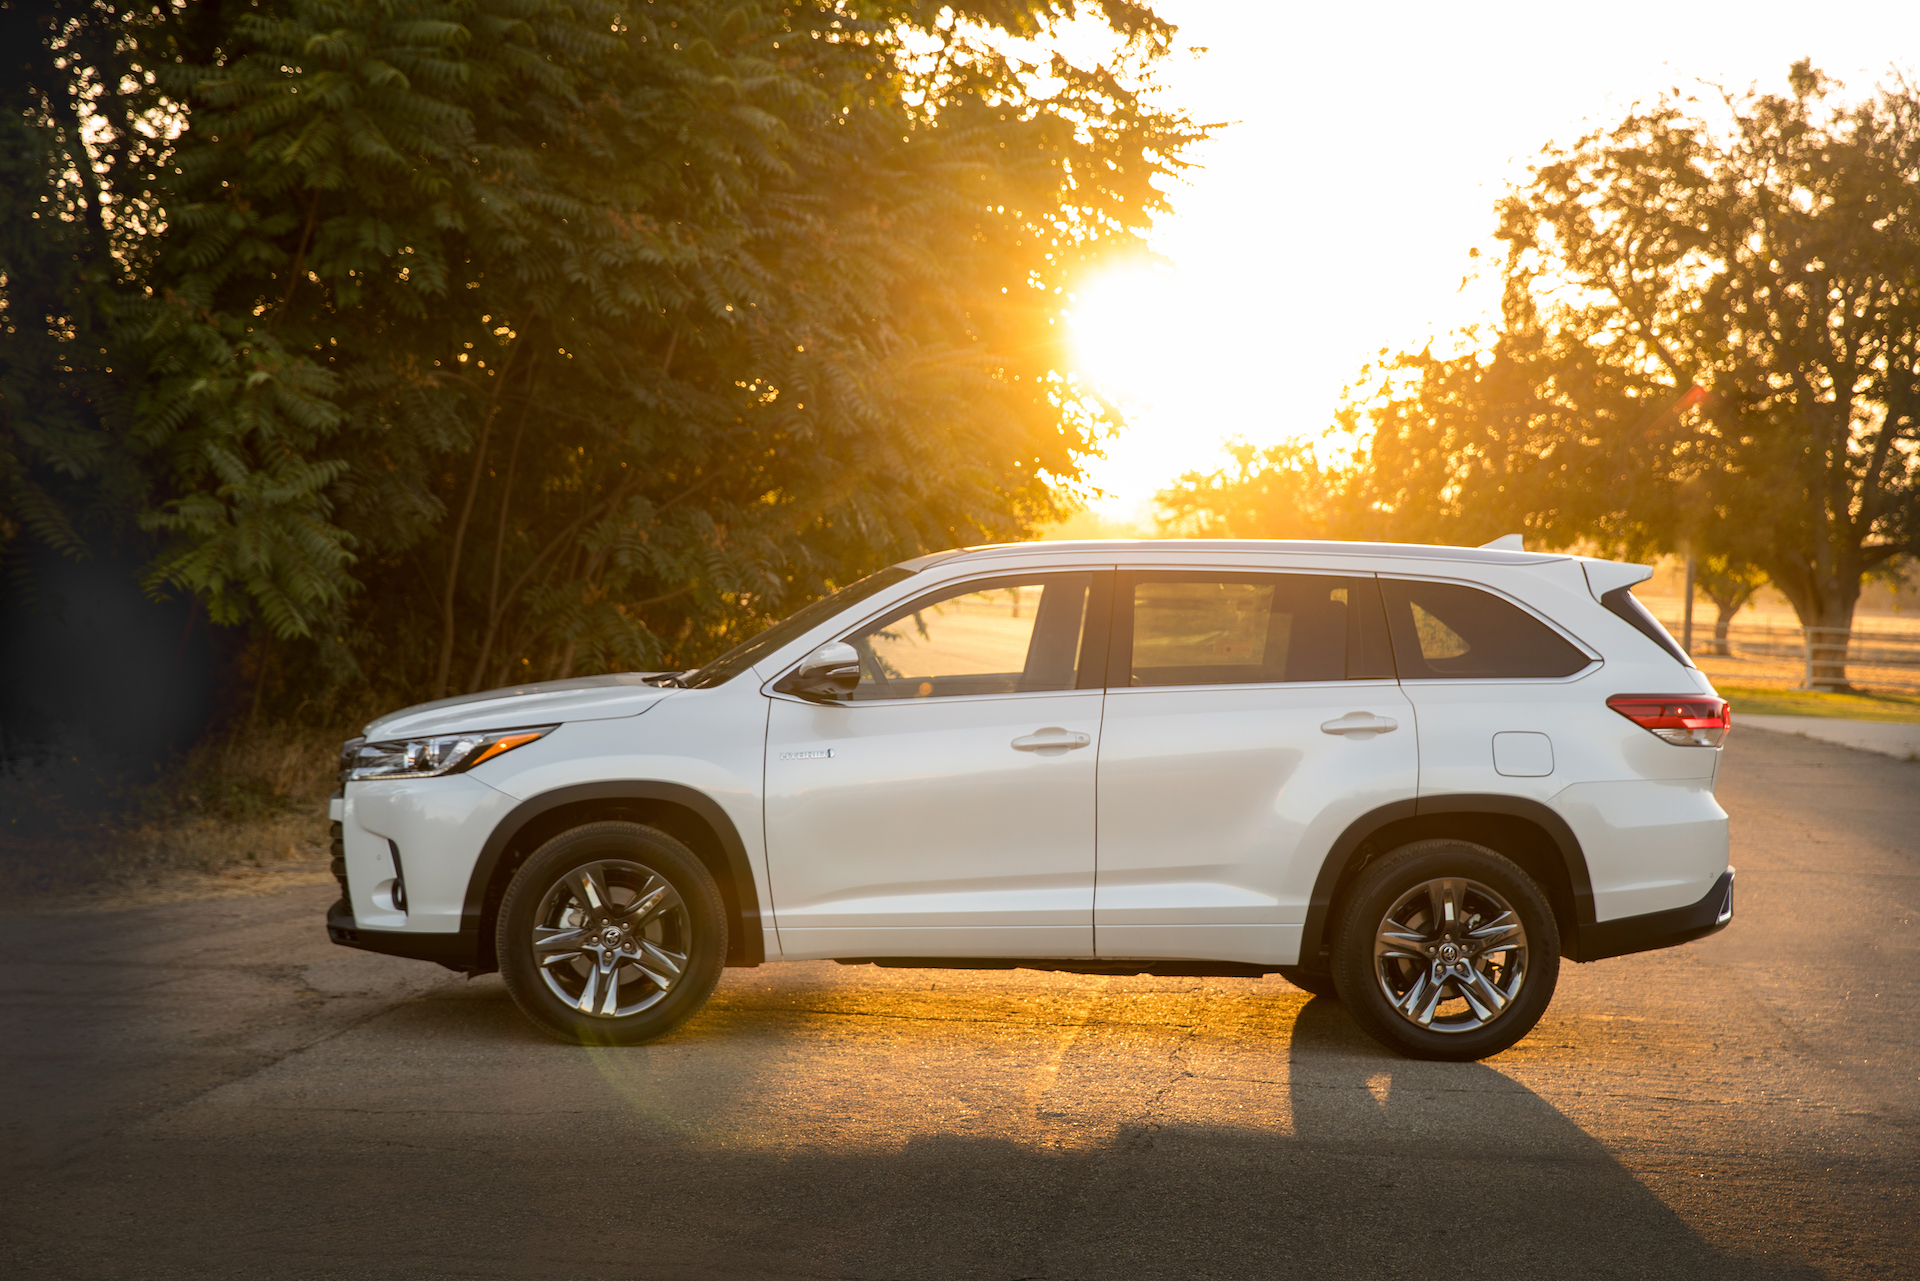 Cheap Cars For Sale In Indianapolis 2017 Toyota Highlander Gas Mileage - The Car Connection